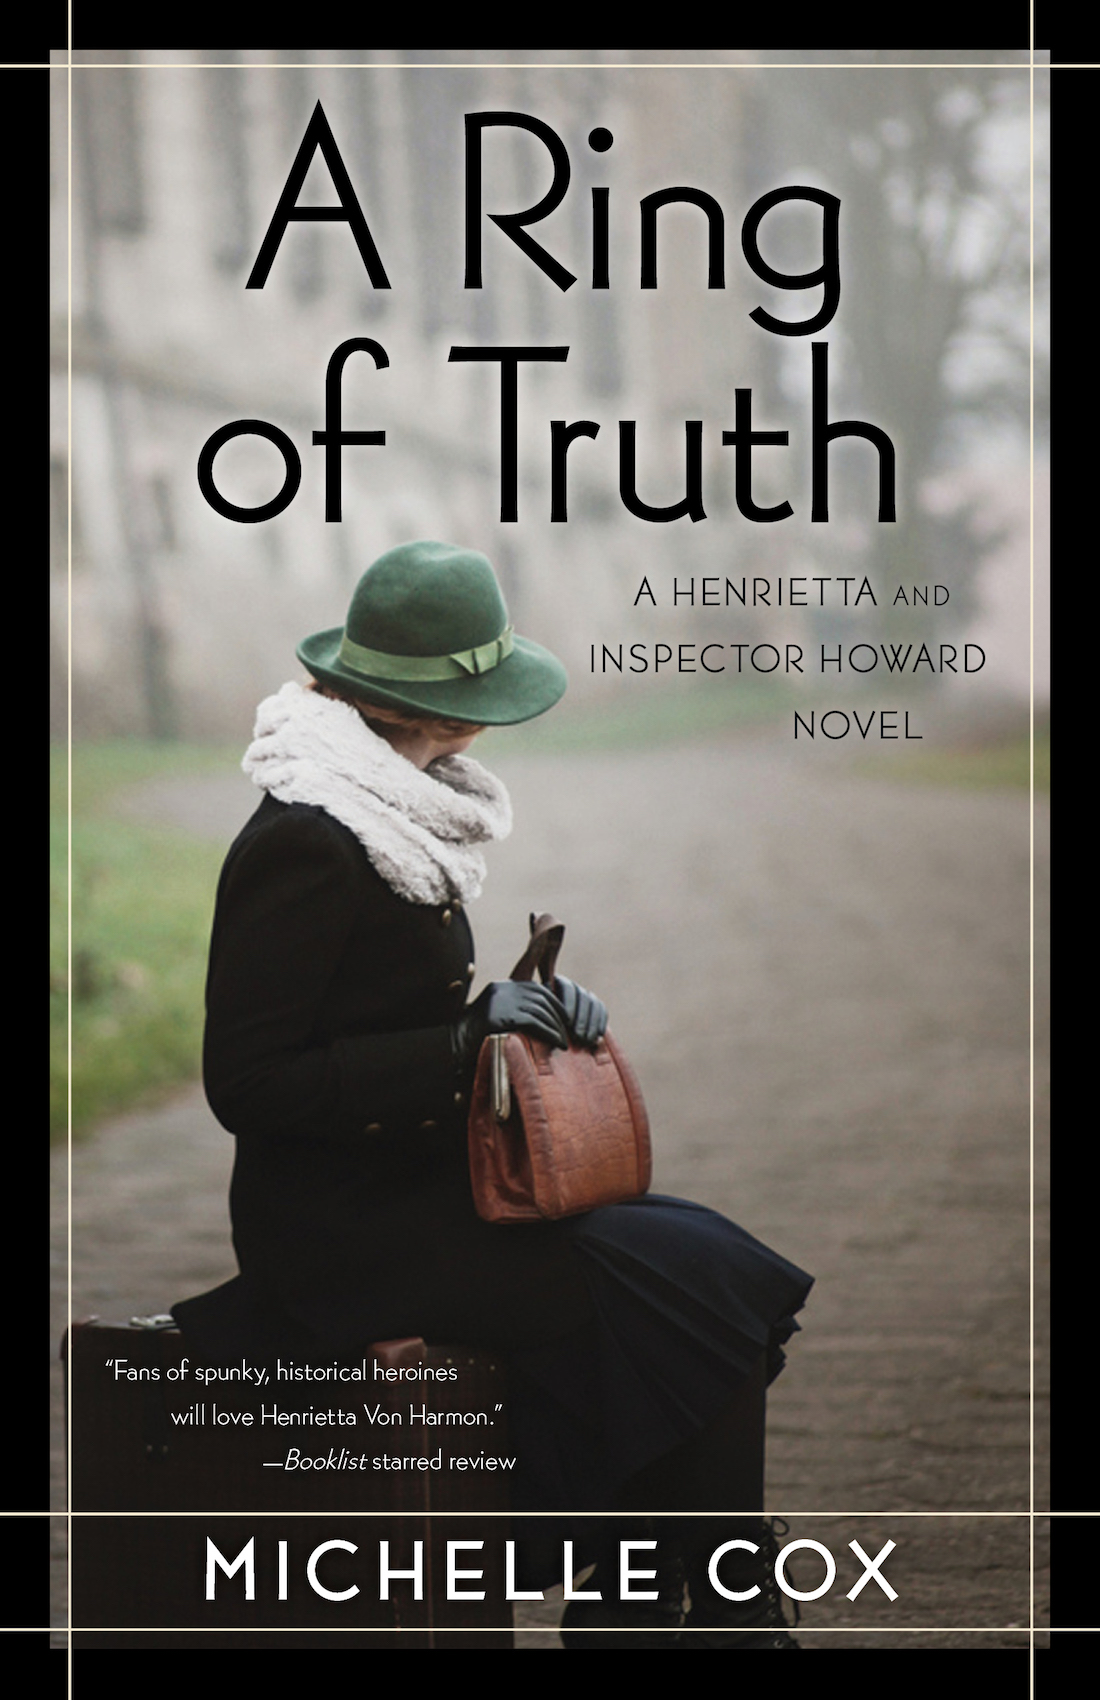 a ring of truth michelle cox author mystery historical fiction book cover